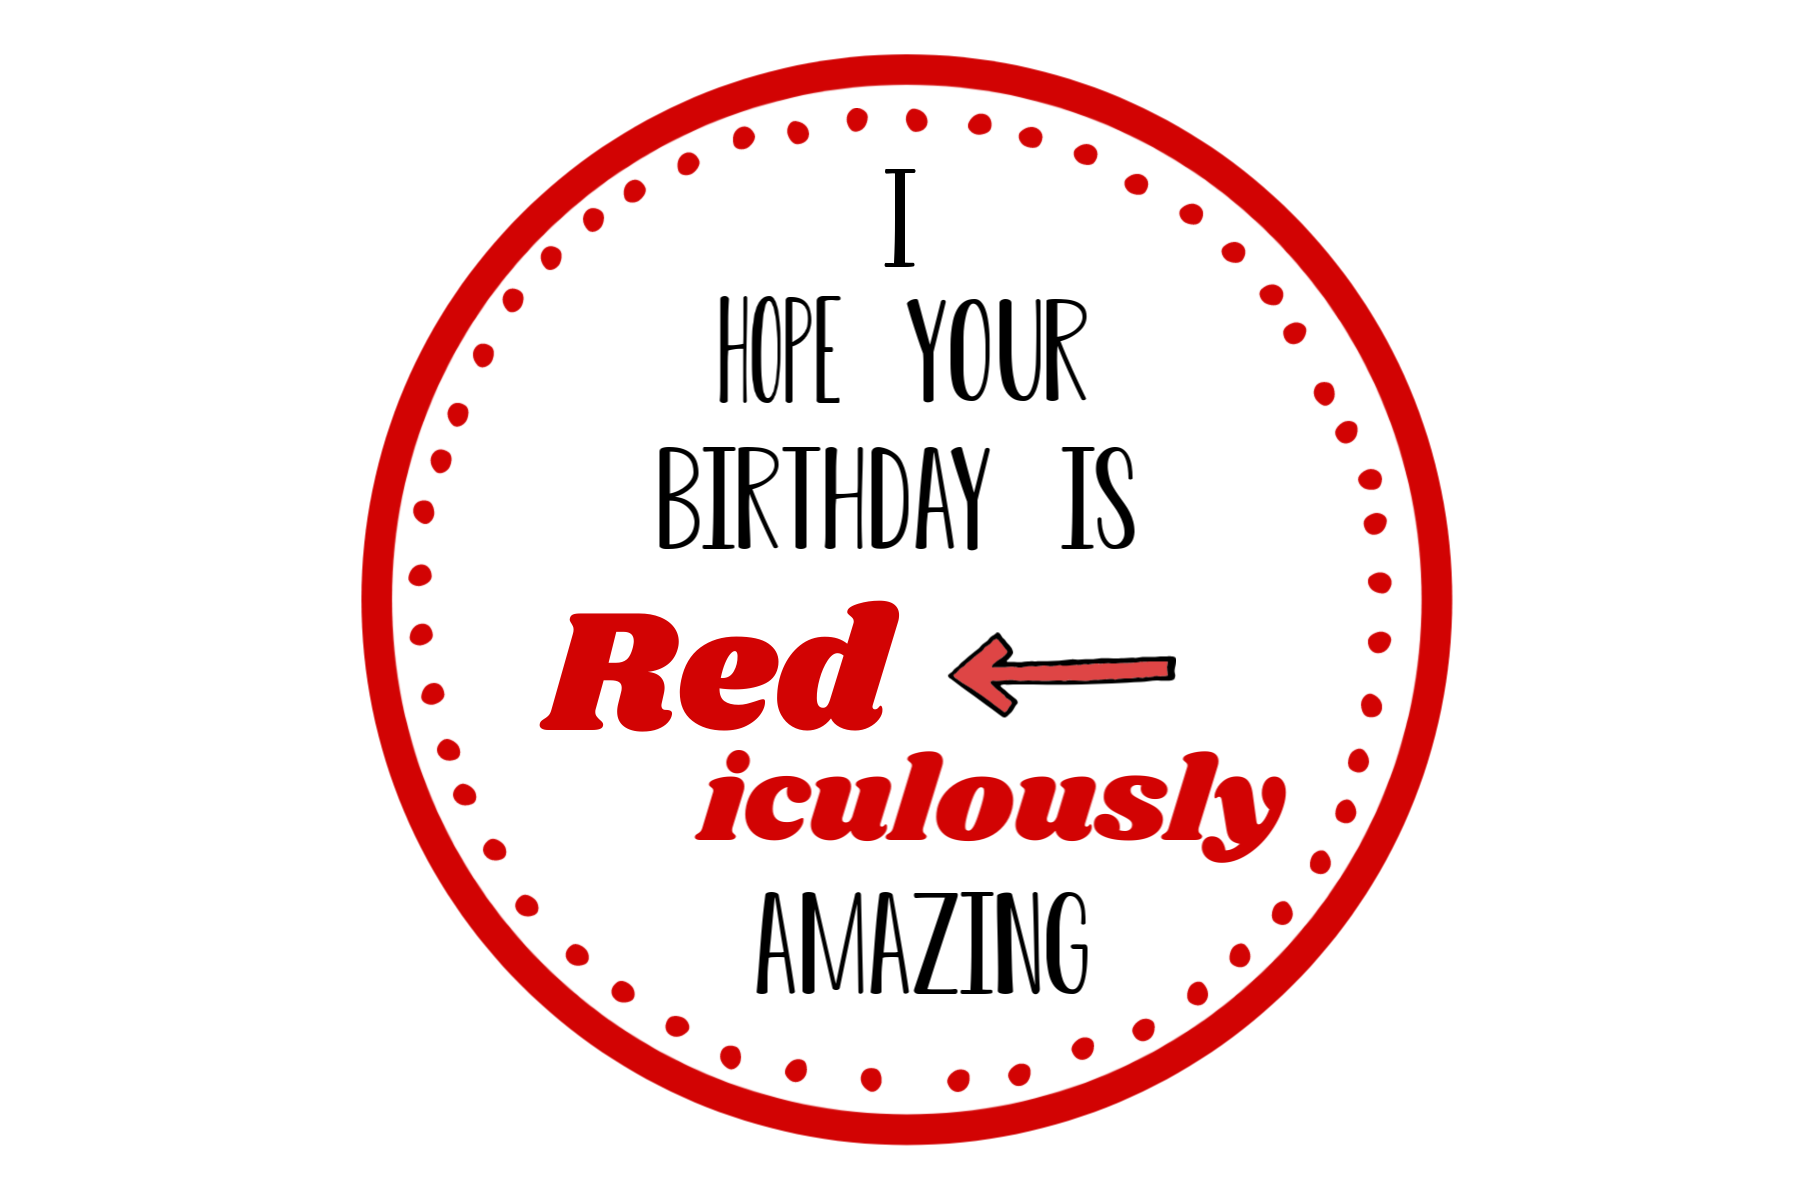 Red-iculous Gift Tag